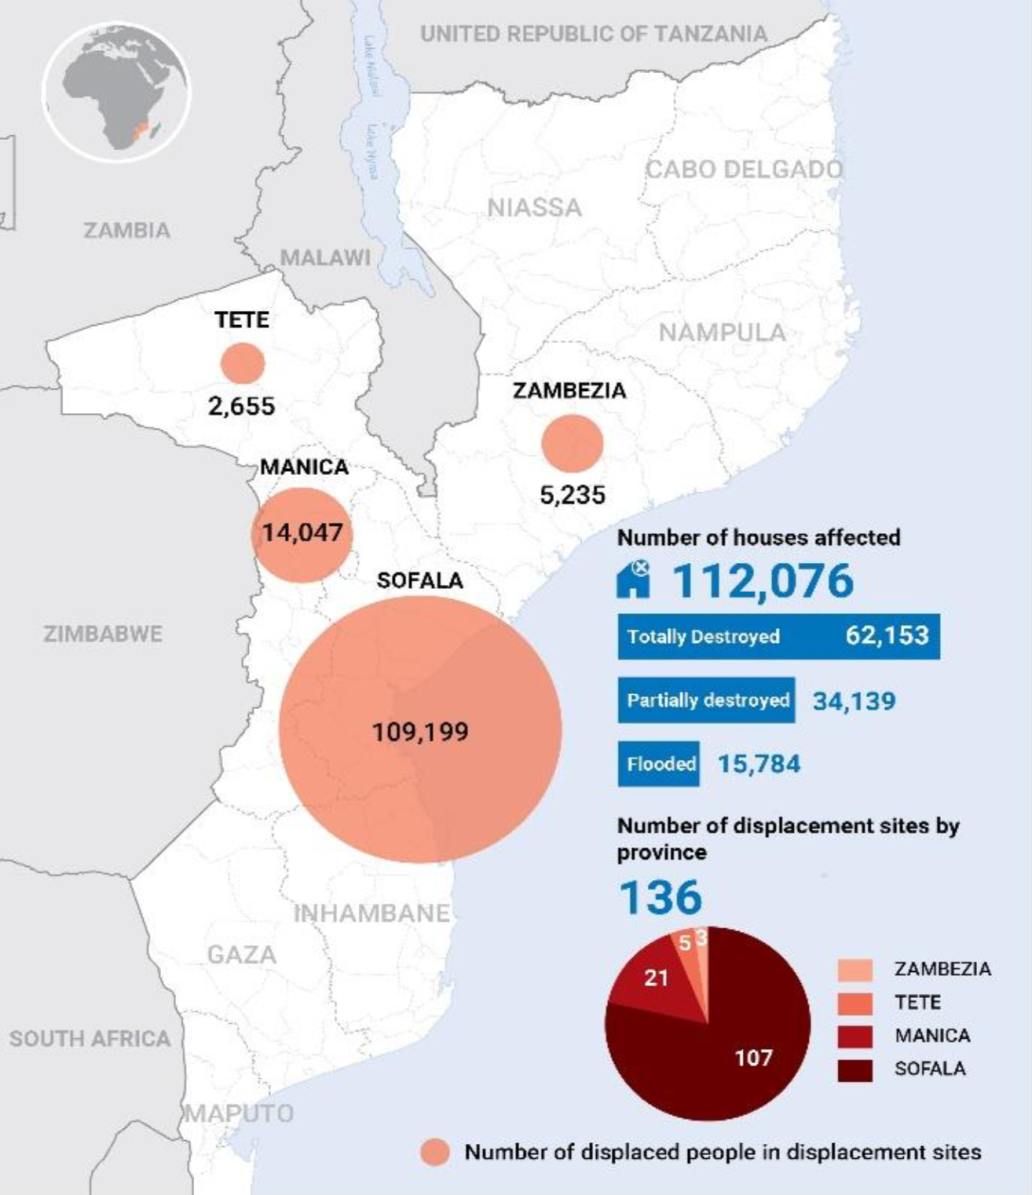 mozambique-houses-affected-by-floods